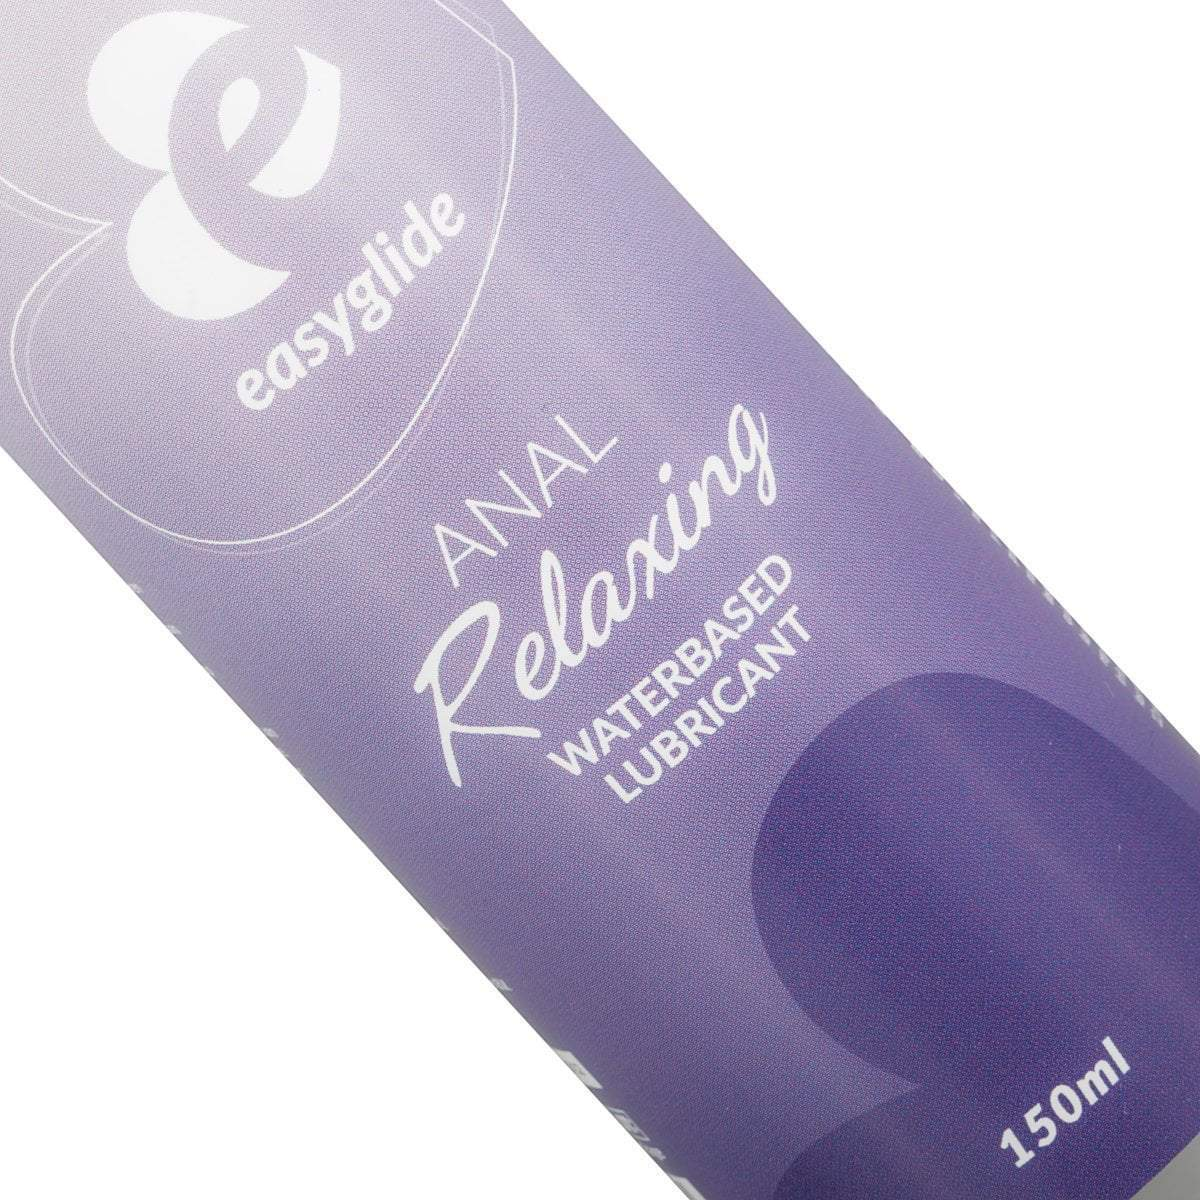 EasyGlide anal lubricant EasyGlide Anal Relaxing Lubricant - 150 ml